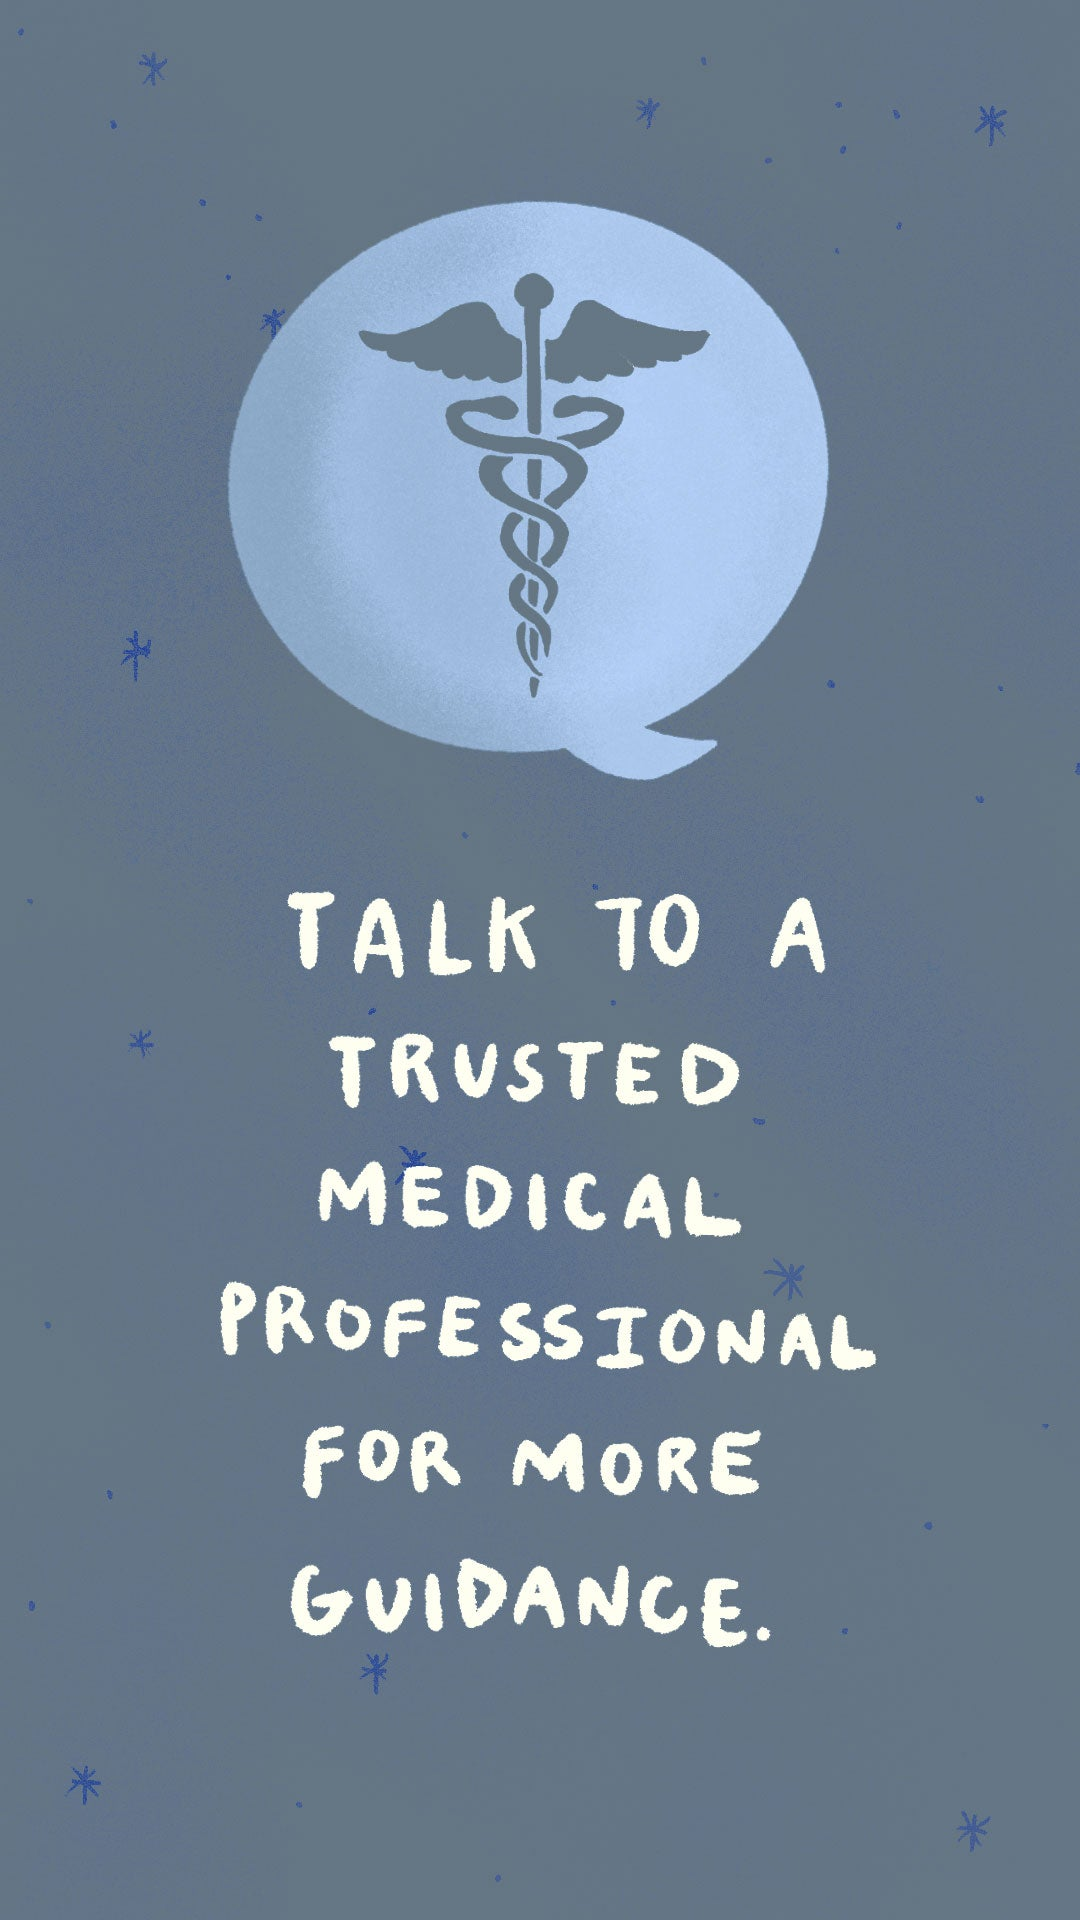 Talk to a trusted medical professional for more guidance.